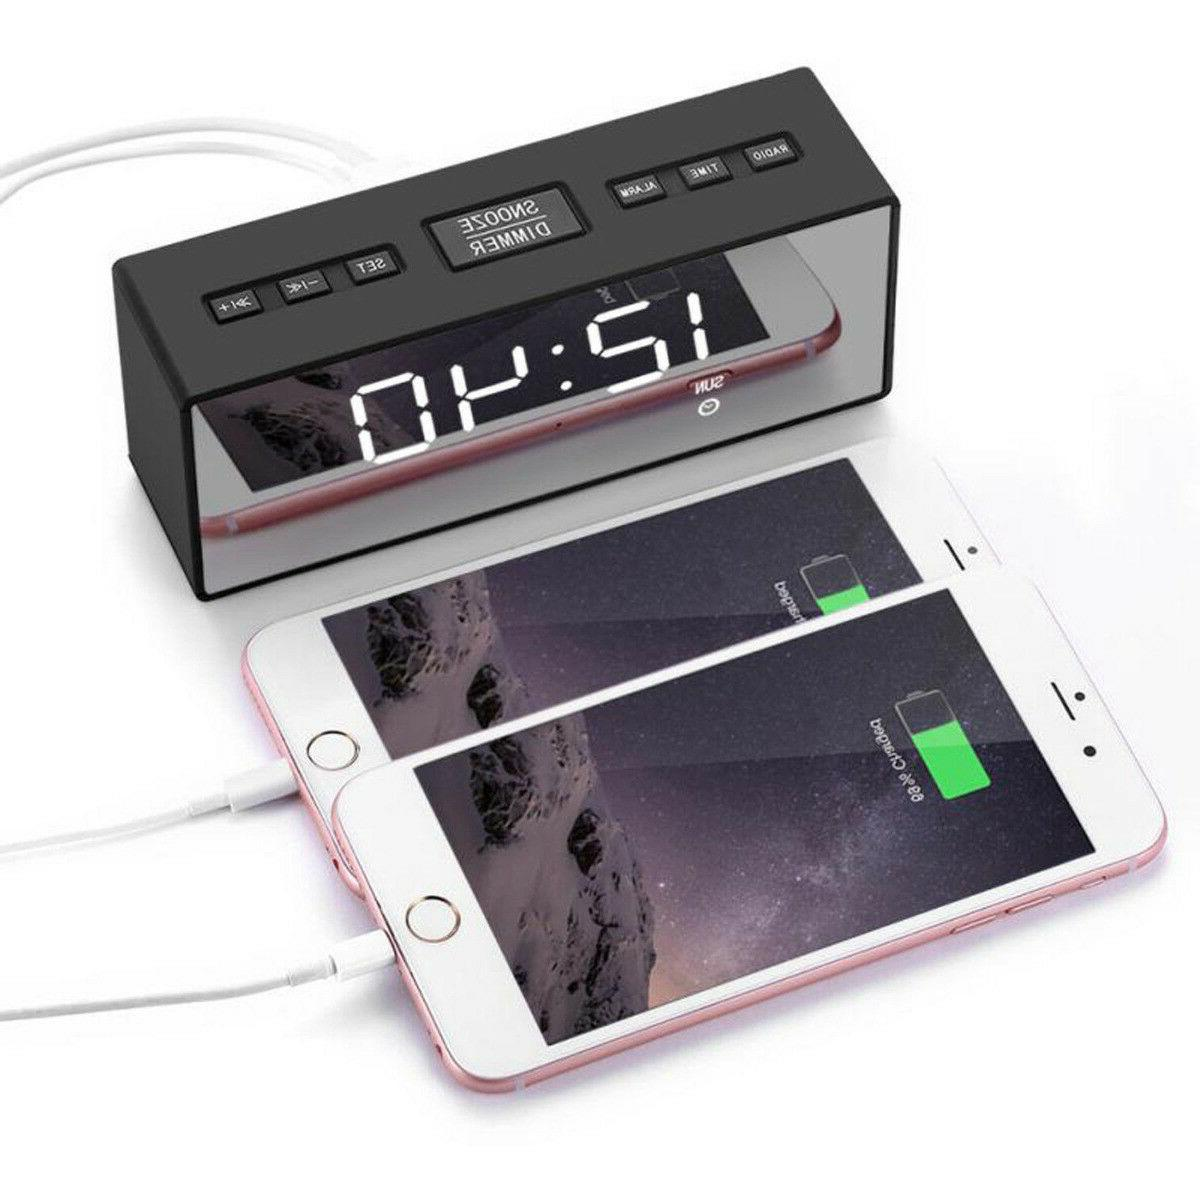 digital led dispaly mirror alarm clock snooze